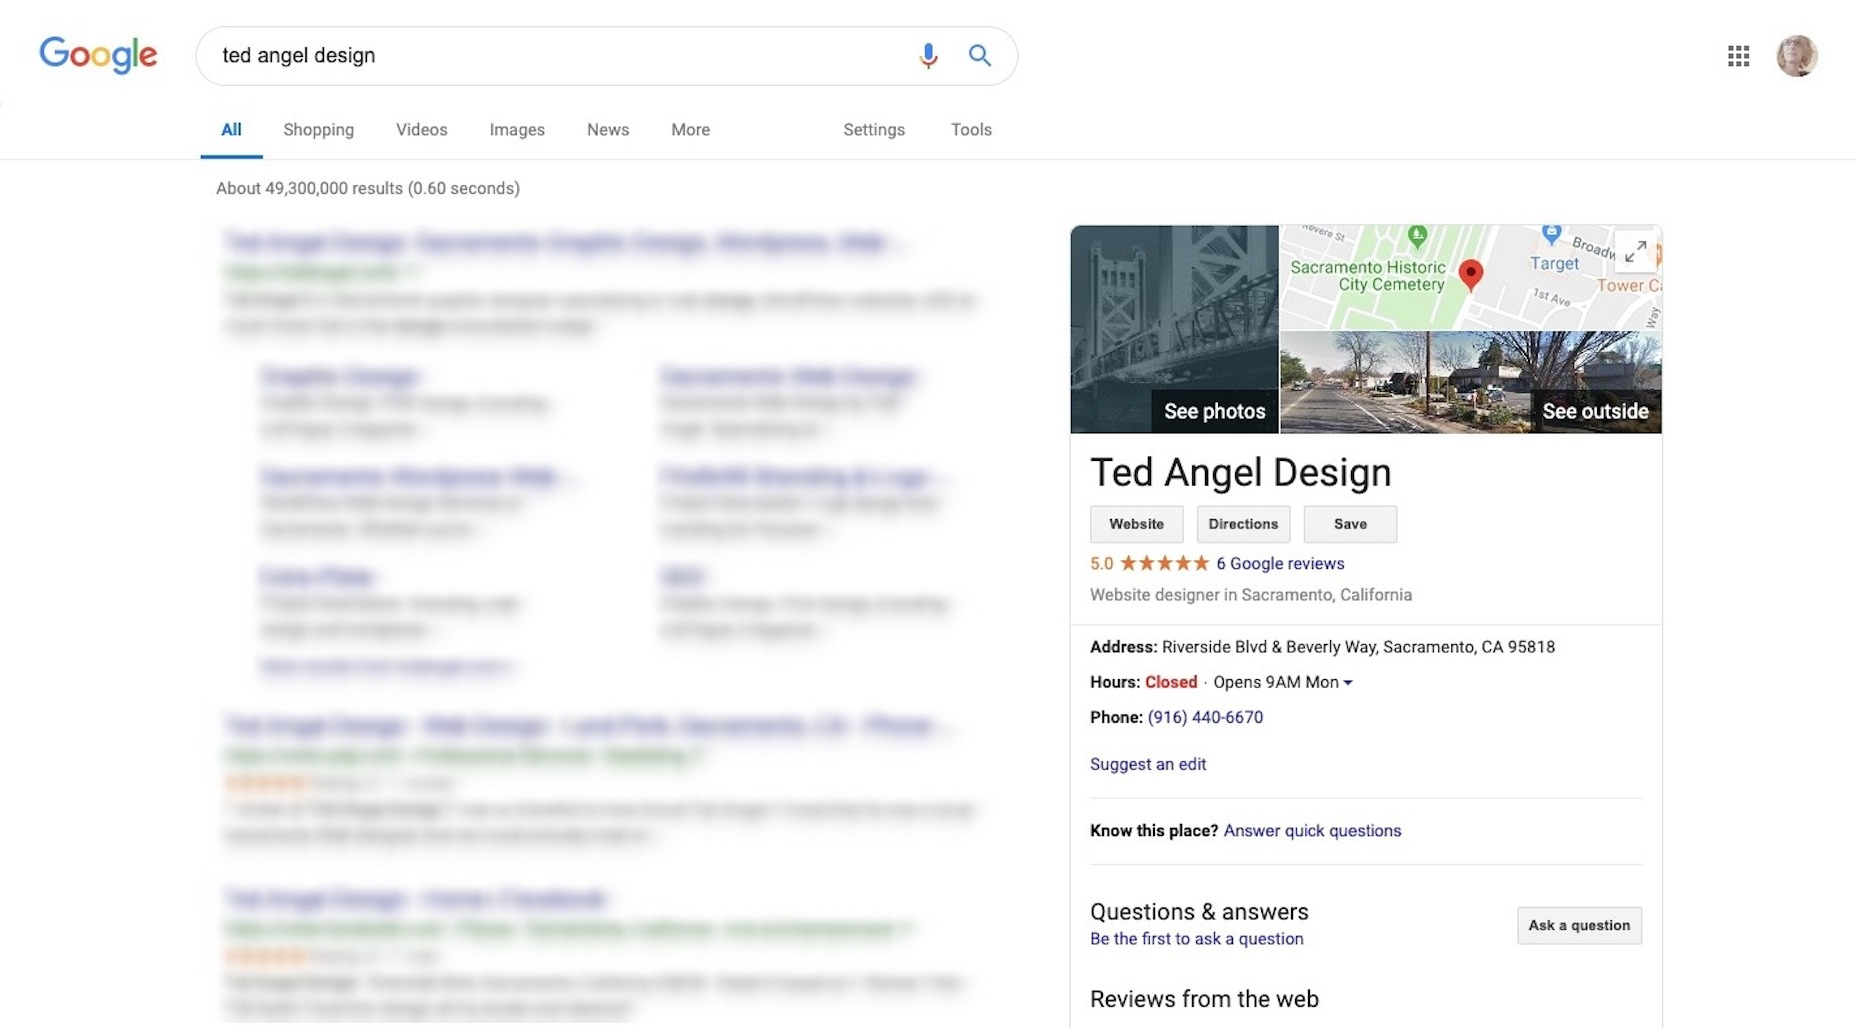 Ted Angel Design